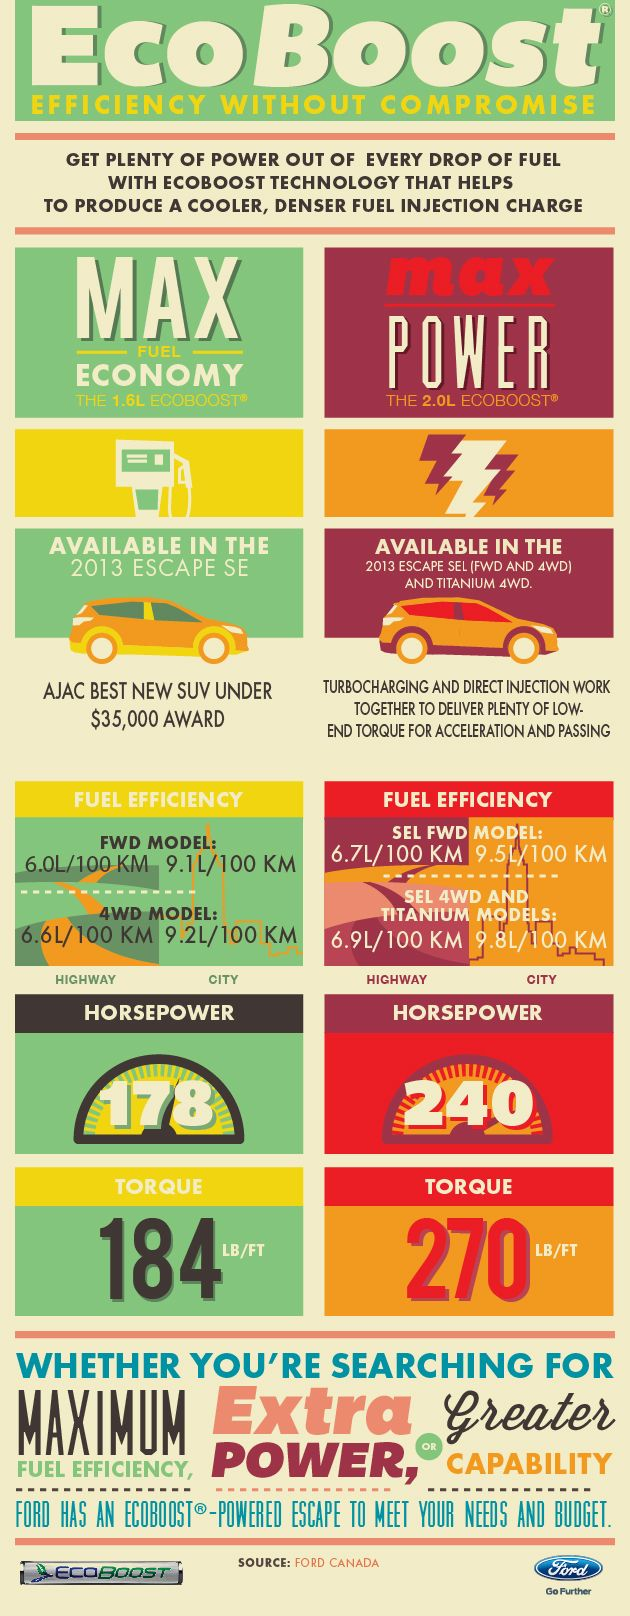 Ford's EcoBoost engines provide advanced fuel efficiency without compromise in power. Check out the Ford Blog for a cool infographic with the details.